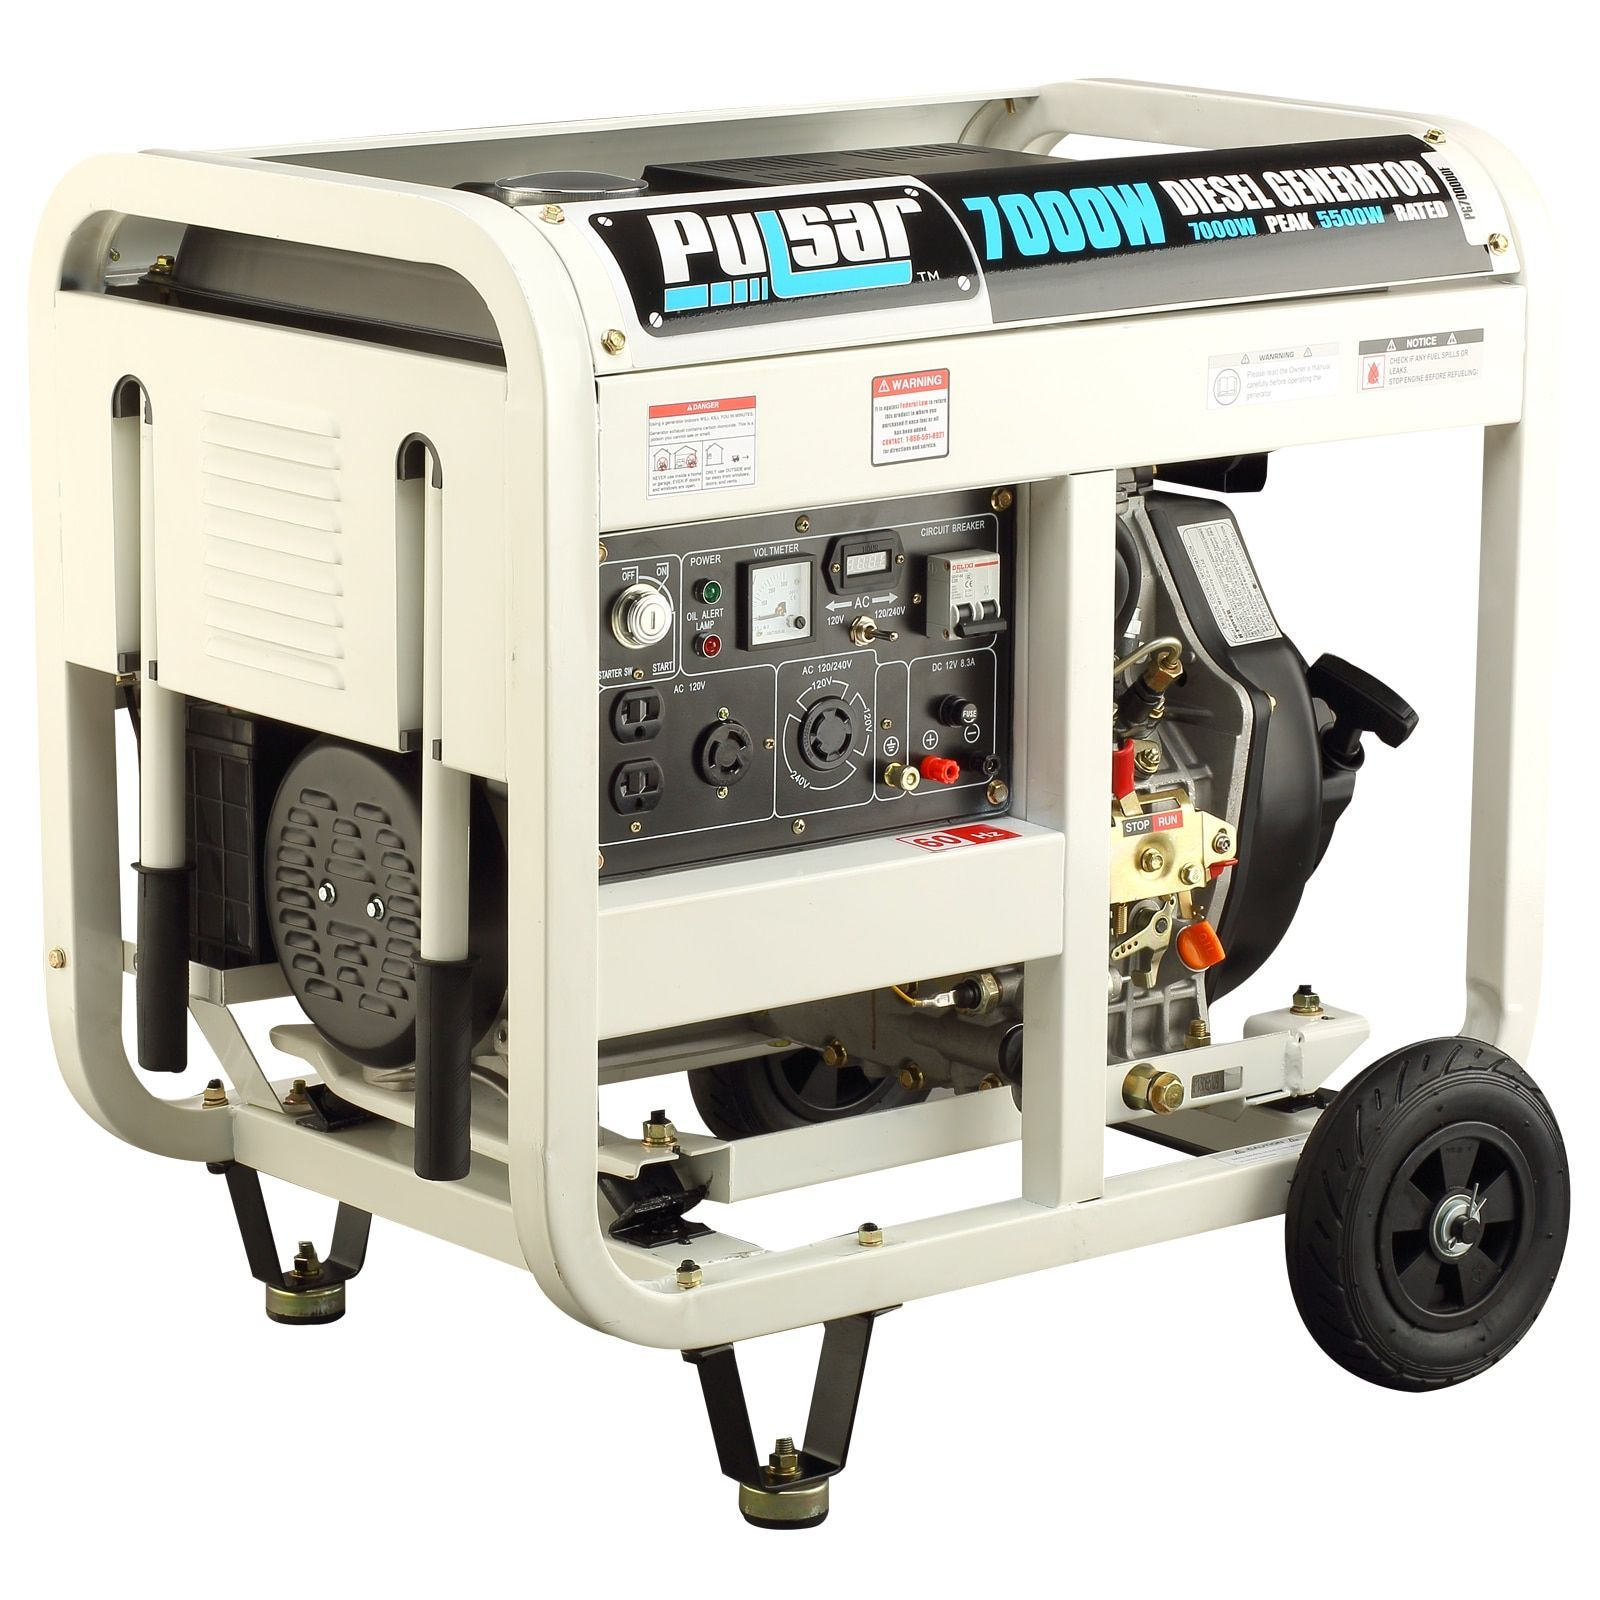 Pulsar Products 7 000 watt Diesel Powered Portable Generator with